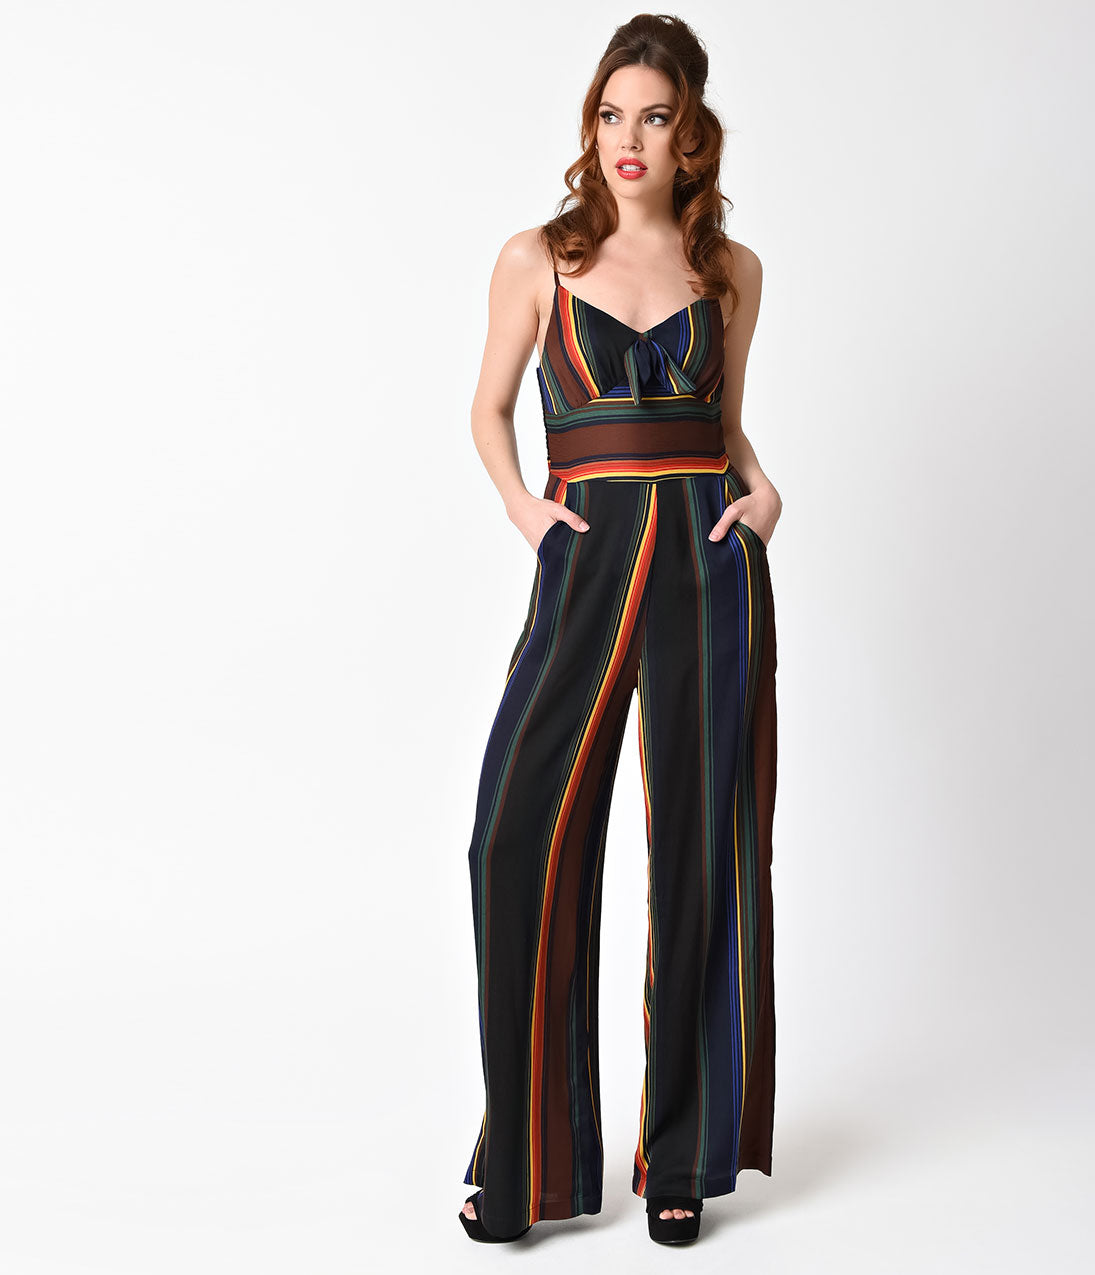 Vintage High Waisted Trousers, Sailor Pants, Jeans Voodoo Vixen 1970S Style Black  Rainbow Striped Vivian Jumpsuit $82.00 AT vintagedancer.com